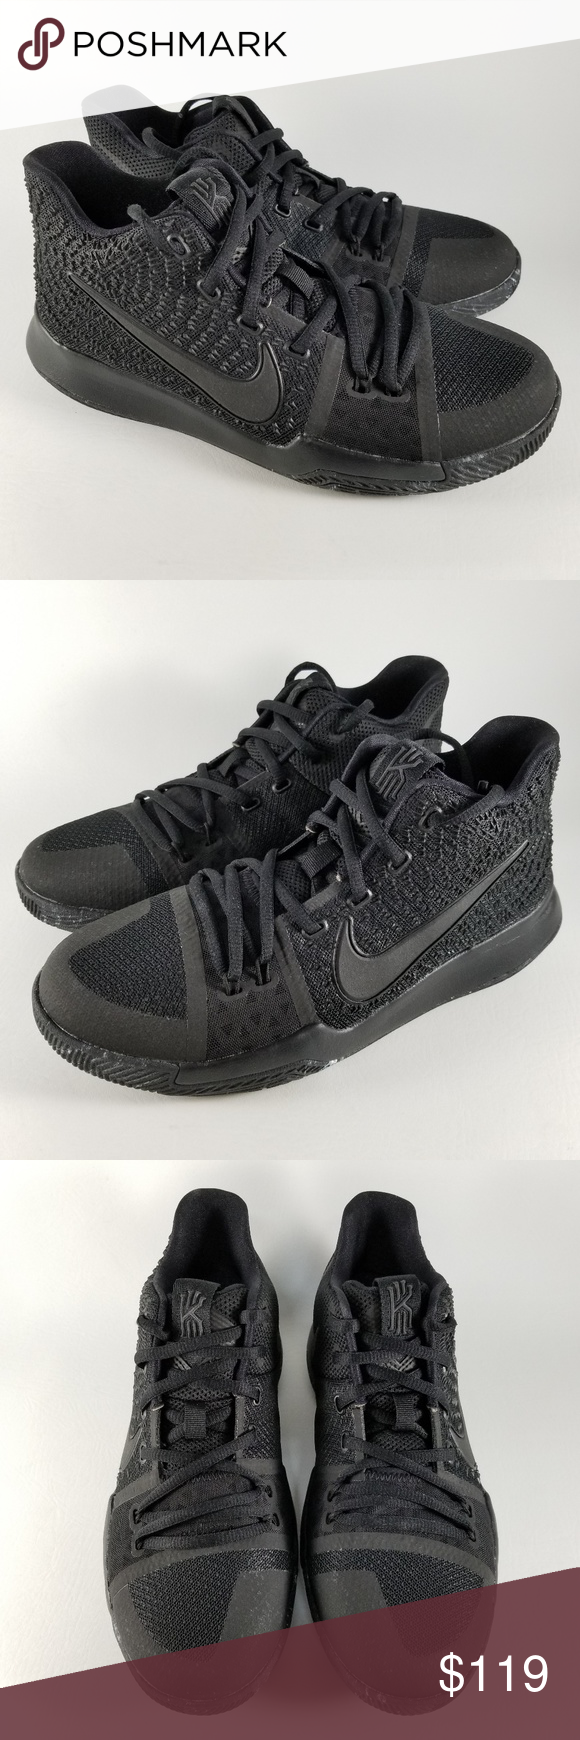 Nike Kyrie 3 GS Youth Basketball Shoes Black 6.5Y Nike Kyrie 3 GS  Basketball Shoes Style: 859466-005 Color: Triple Black Size: US Youth 6.5Y  Does not ...